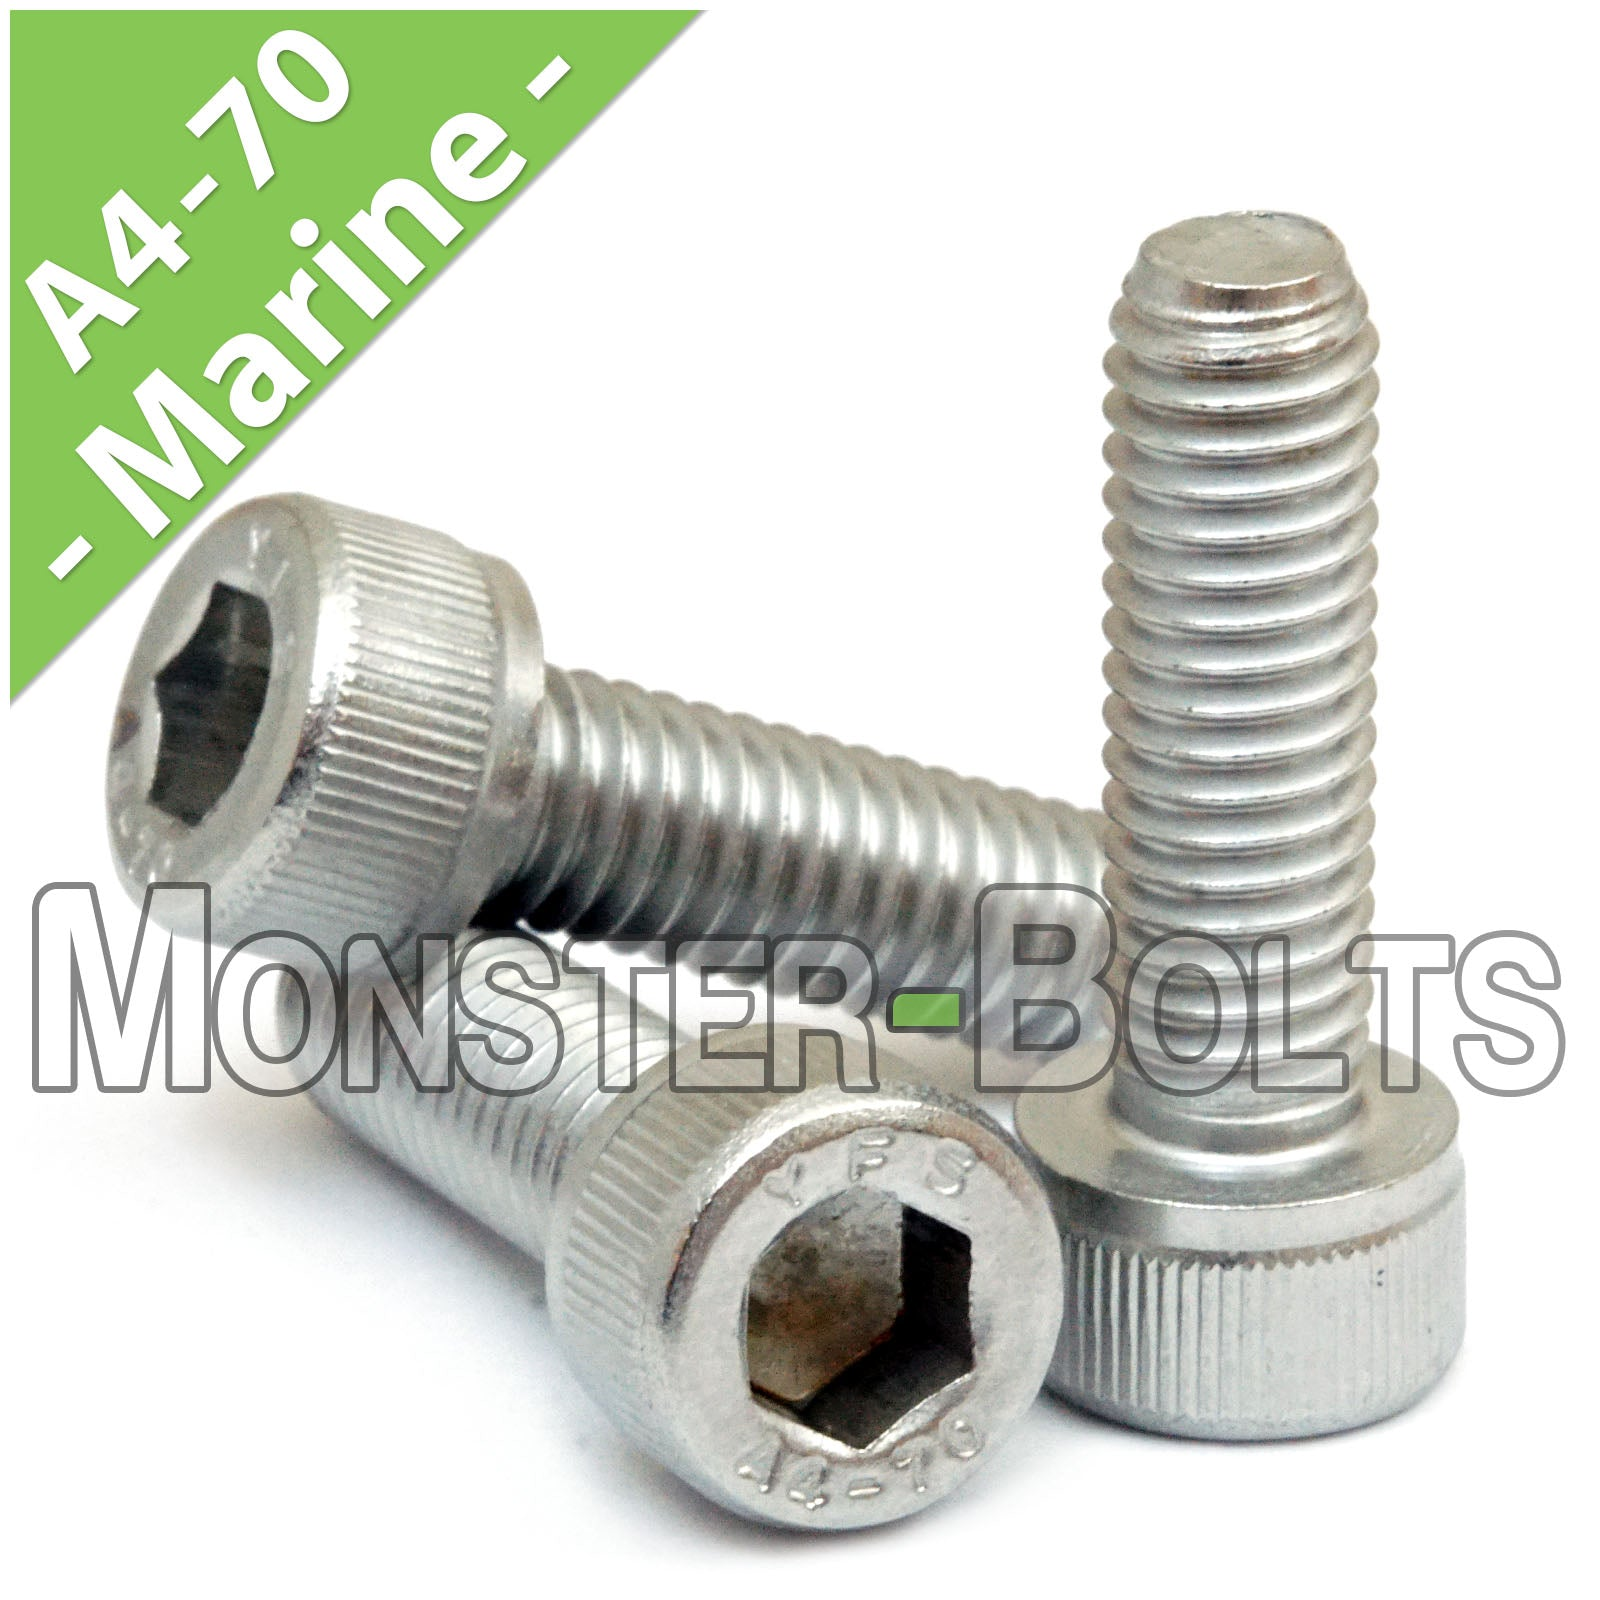 316 DIN 934 M6 STAINLESS STEEL A4 MARINE GRADE FULL NUTS FOR SCREWS BOLTS A4